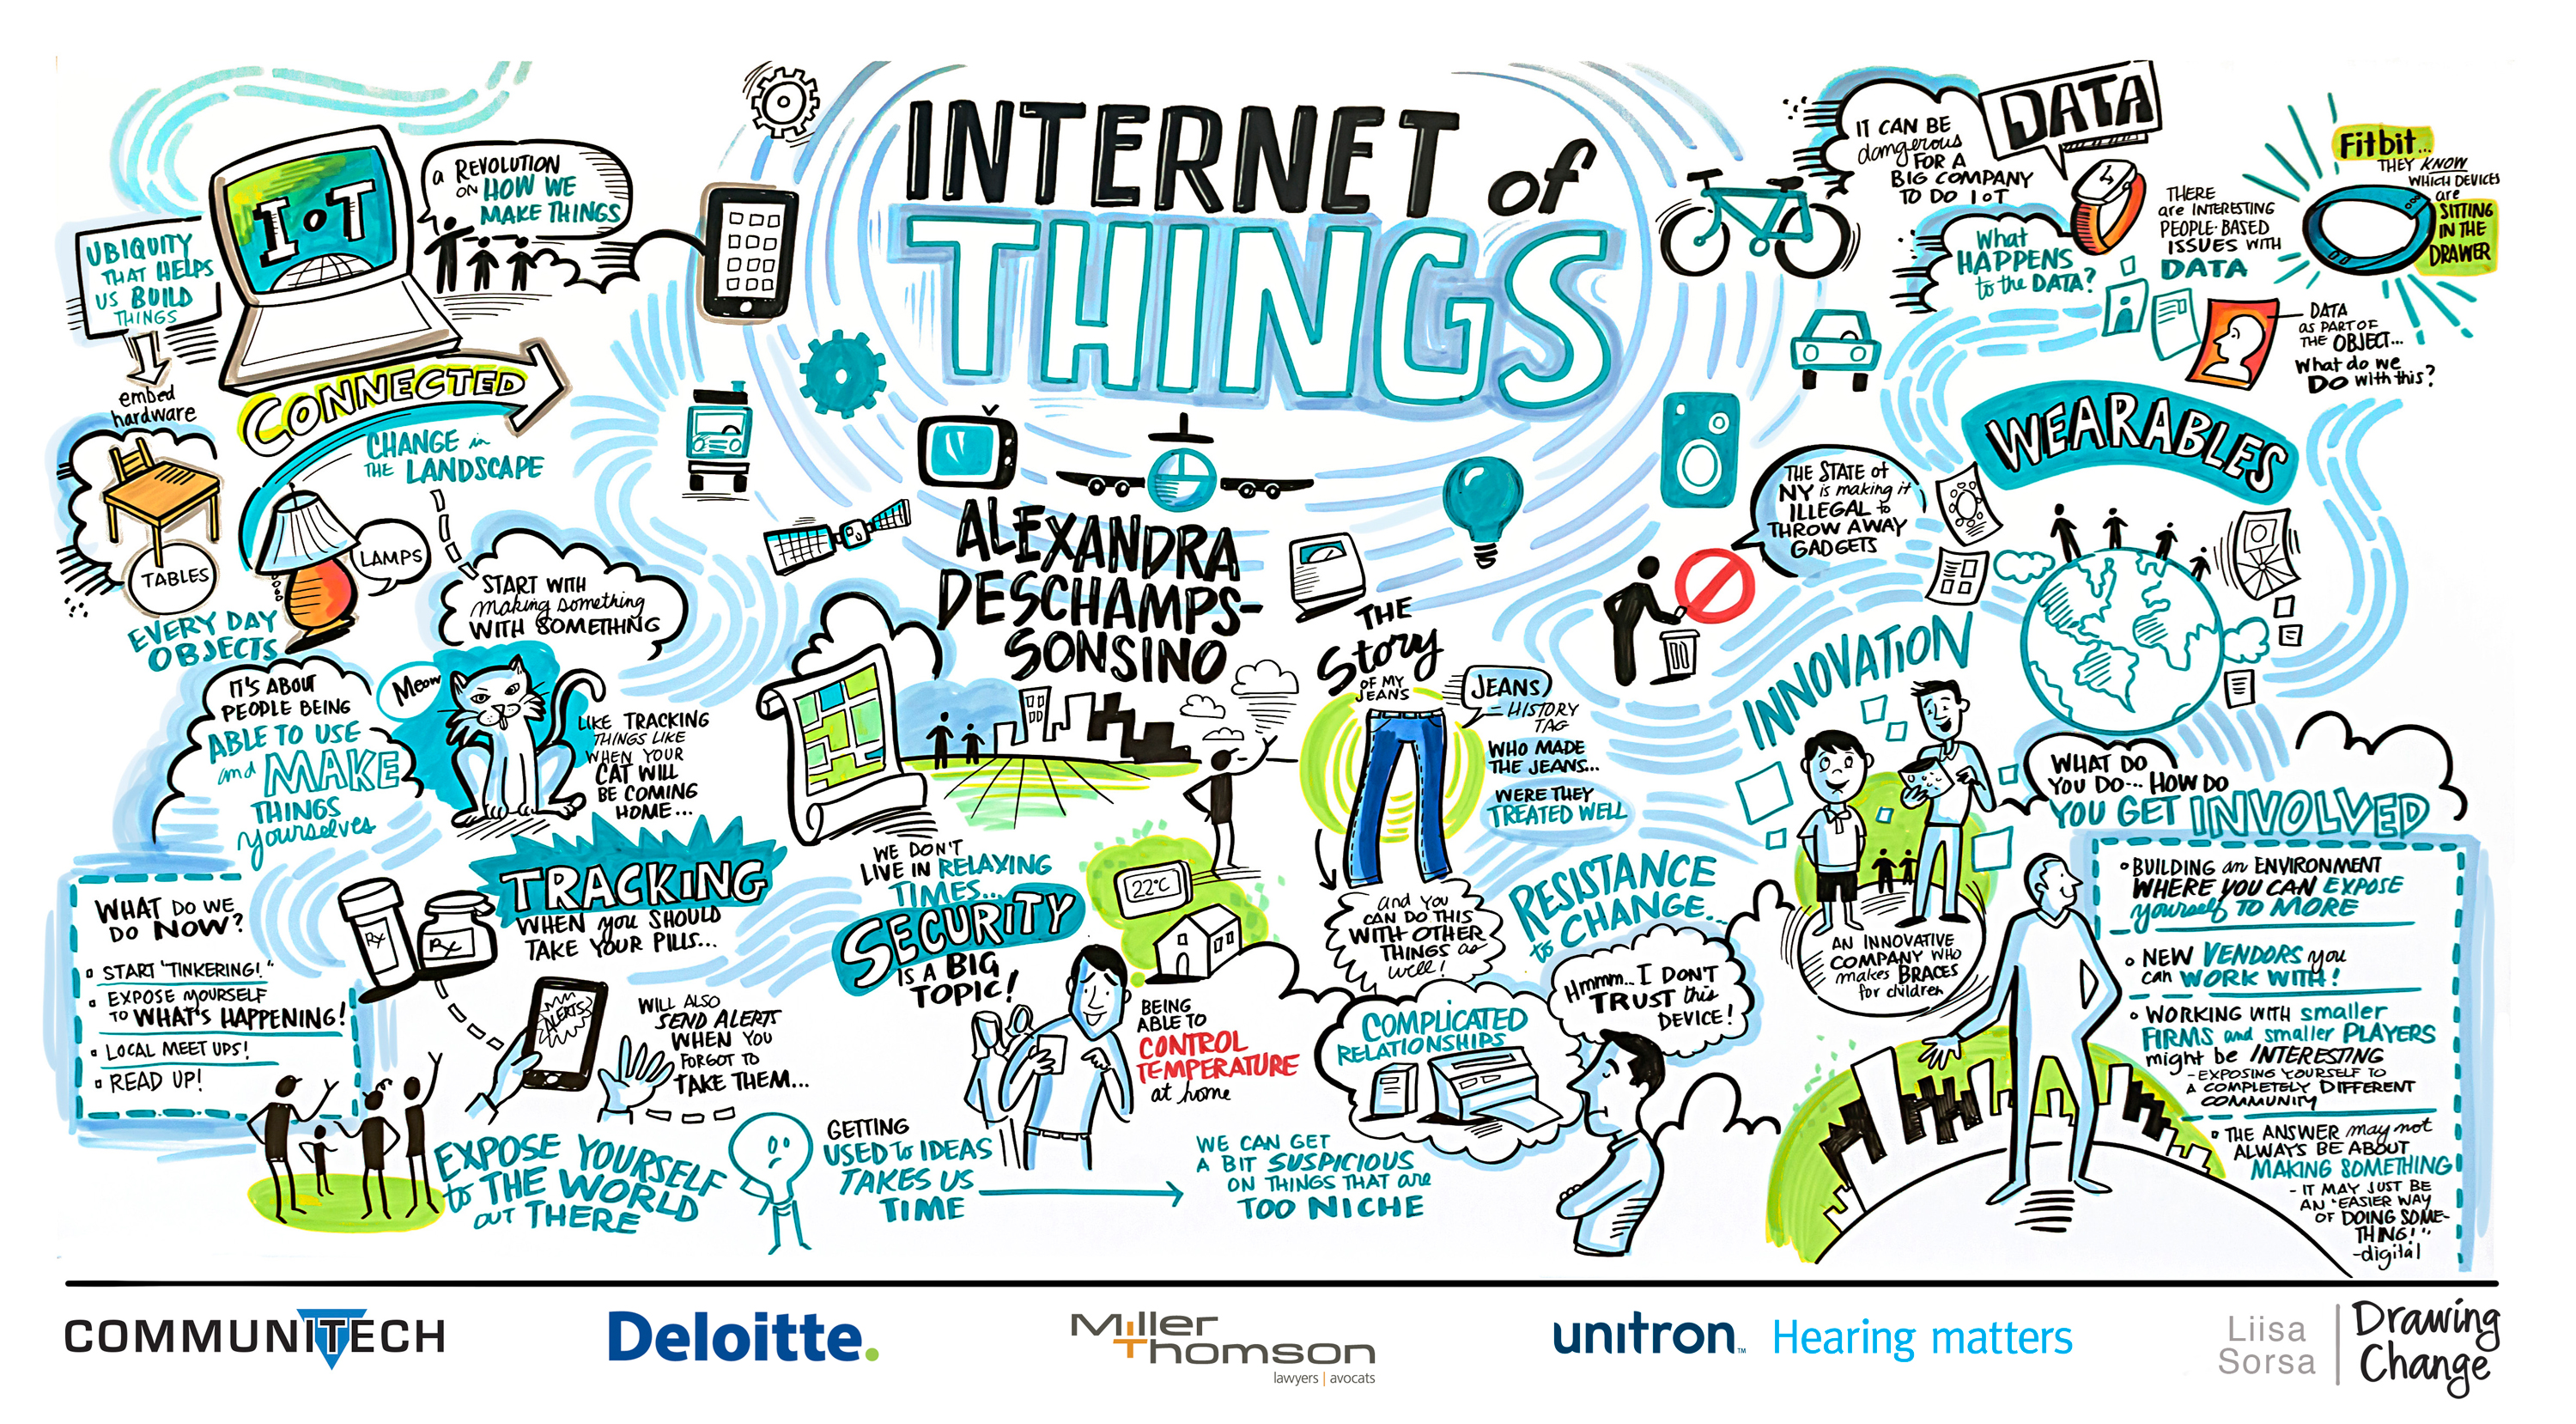 graphic recording, communitech, alexandra deschamps keynote about internet of things